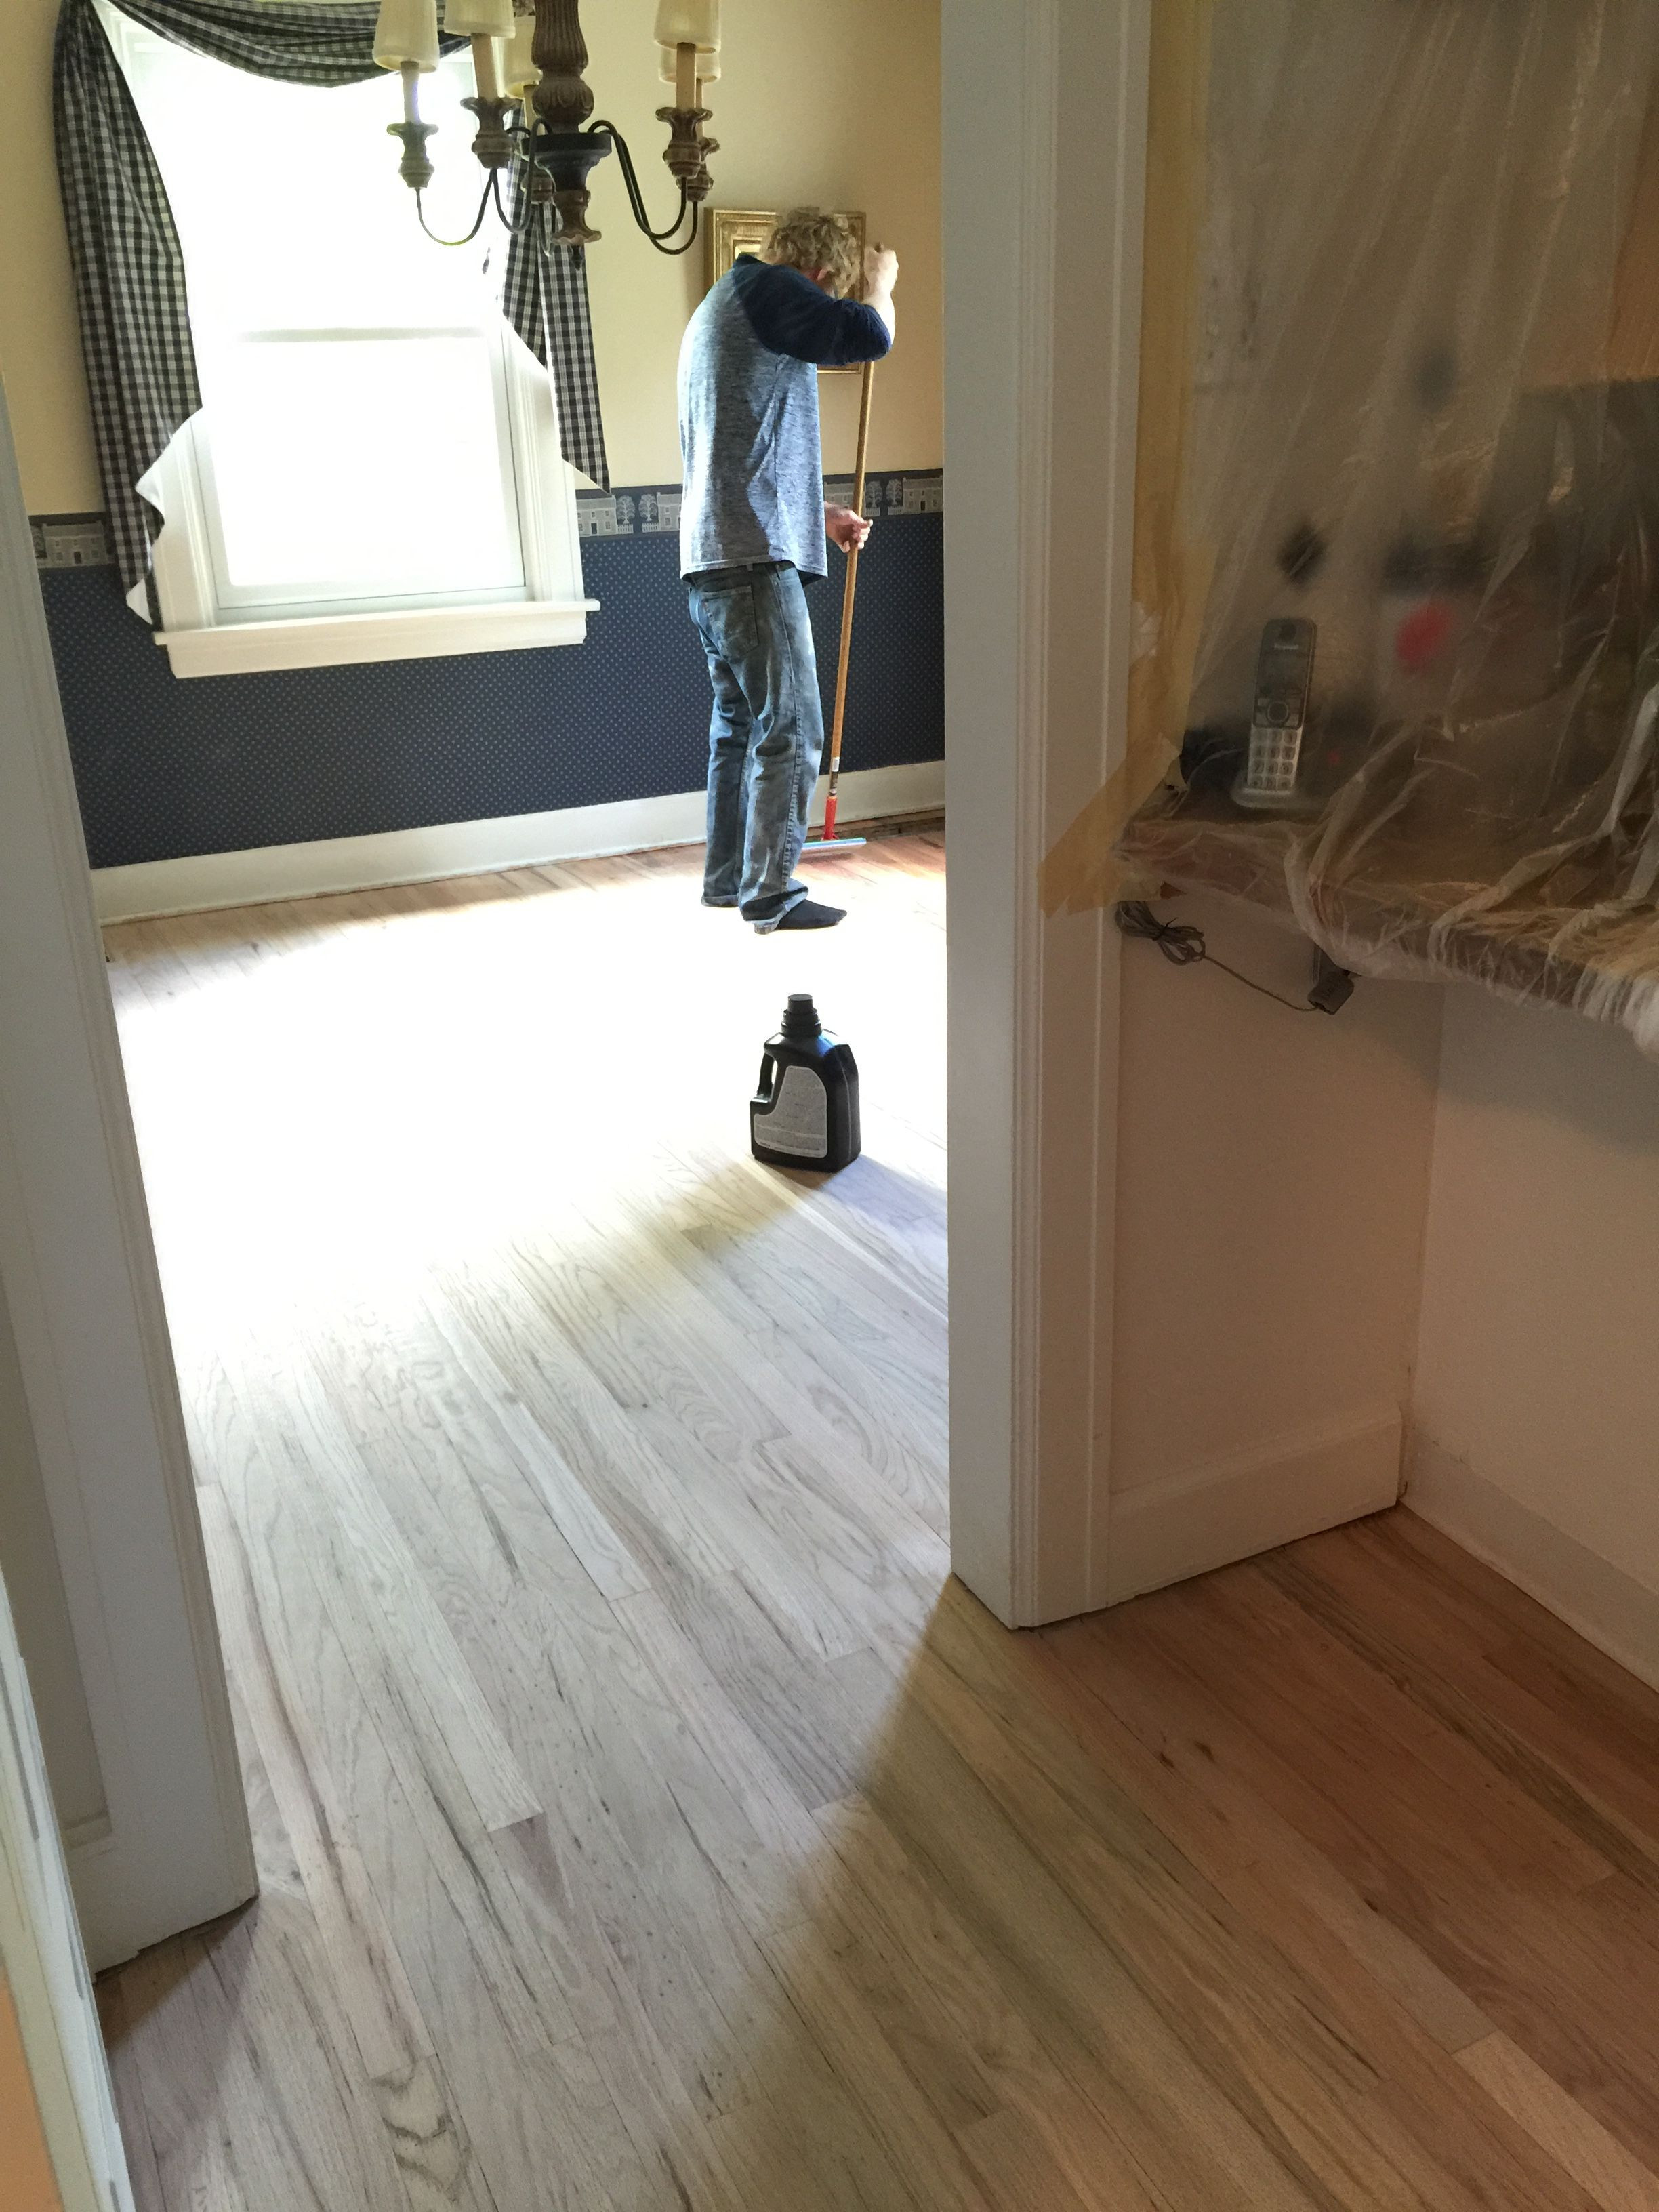 Hardwood Floor Refinishing Denver Of Urban Design Floors Udfloors On Pinterest In 1f35060a7ae0572d505123b9e49e0f2e